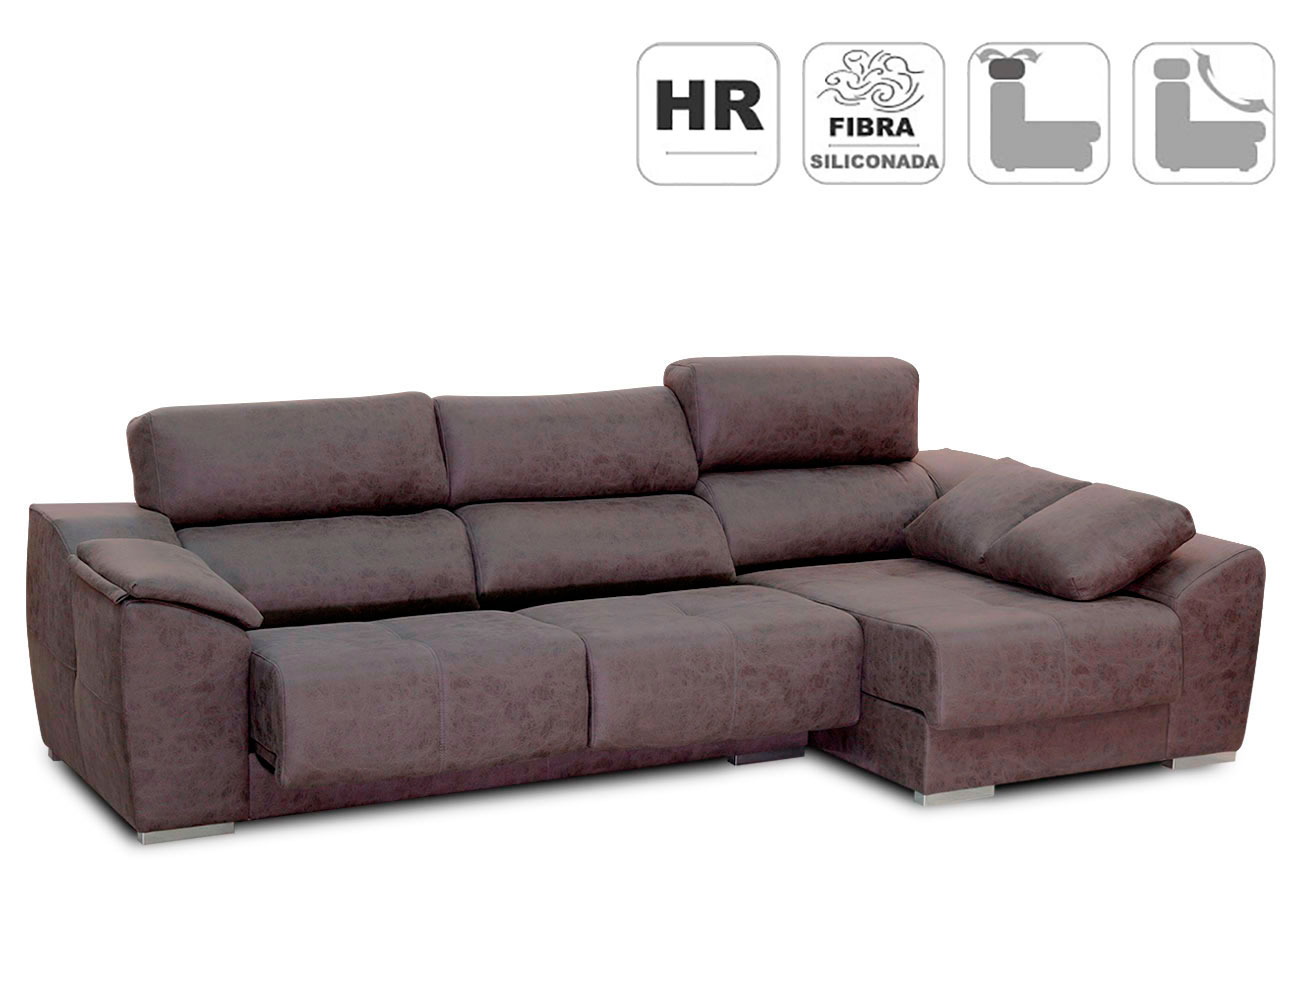 Sofa chaiselongue pared 0 magnolia anti manchas detalle1